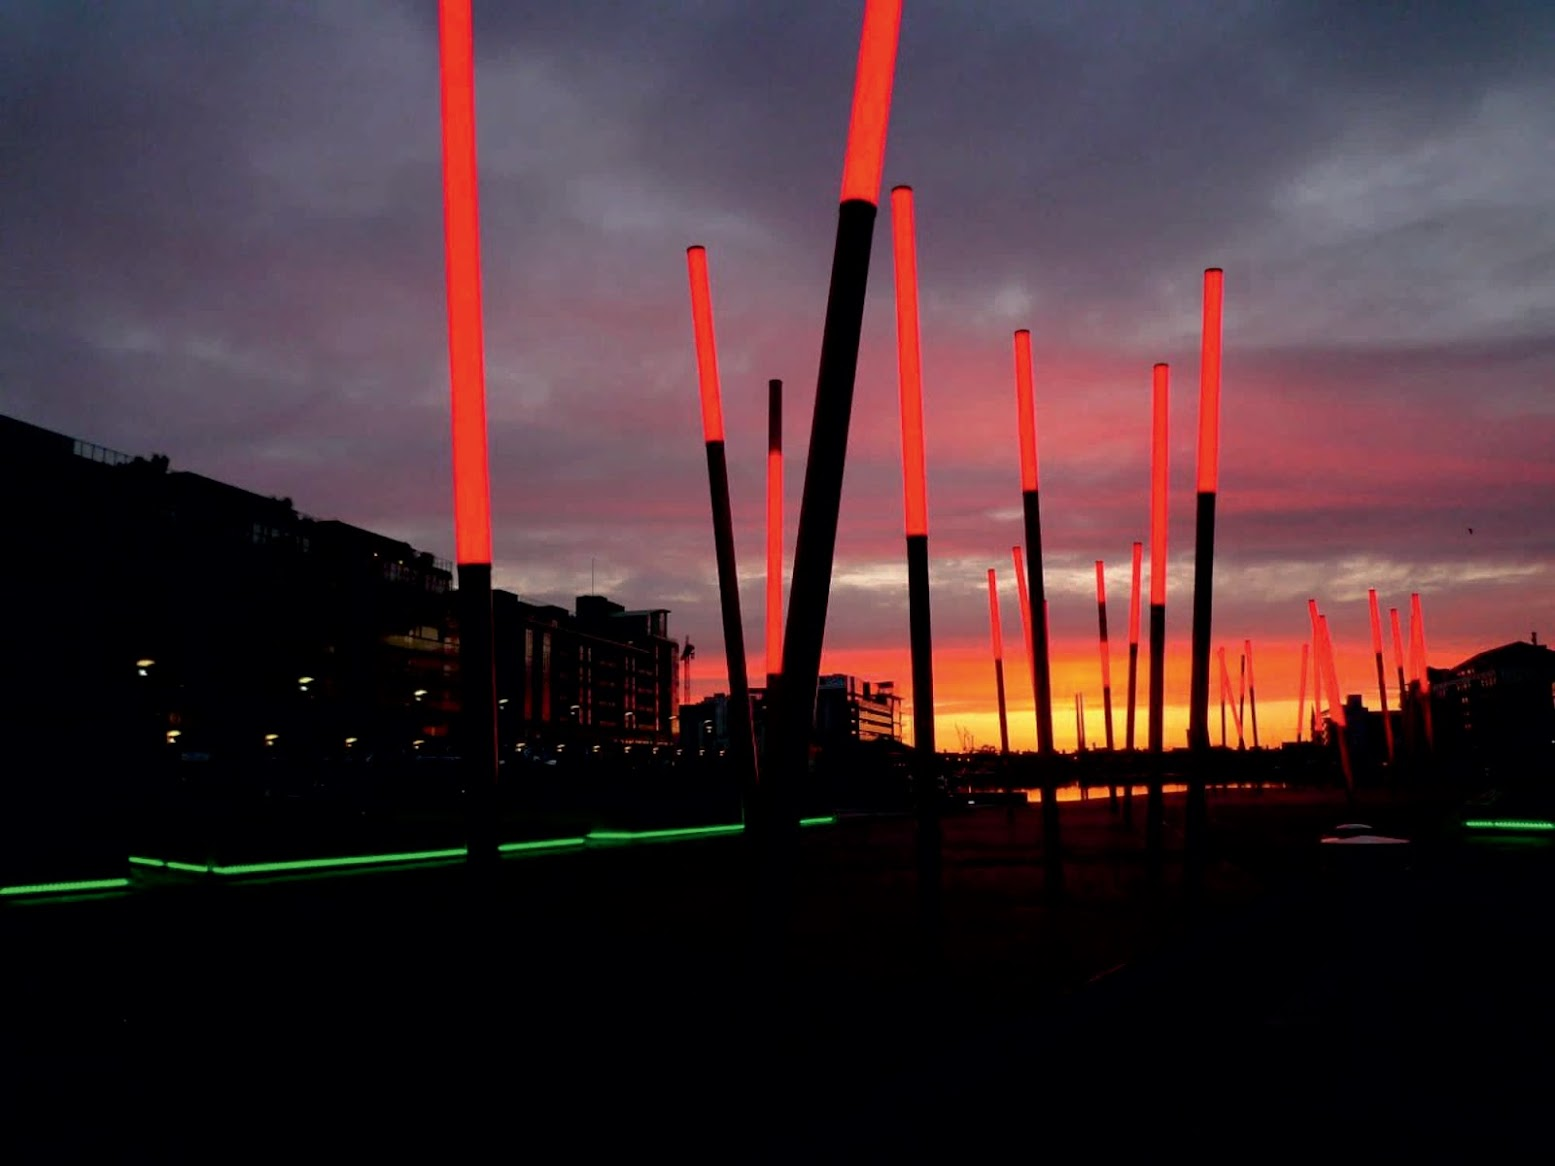 Dublino, Co. Dublino, Irlanda: [GRAND CANAL SQUARE BY MARTHA SCHWARTZ PARTNERS]